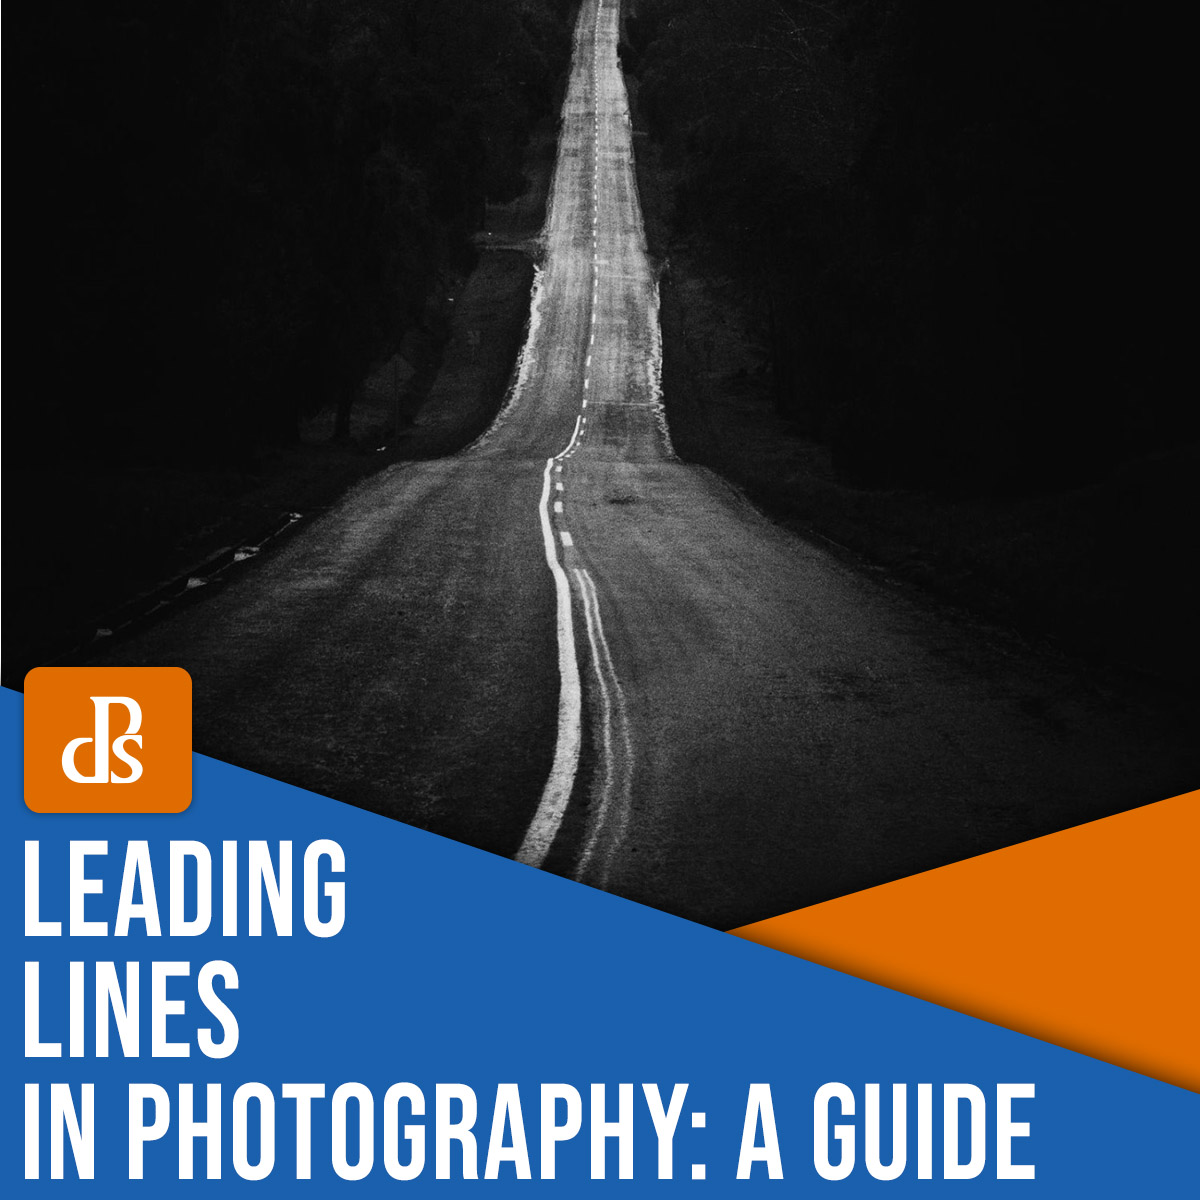 leading lines in photography guide